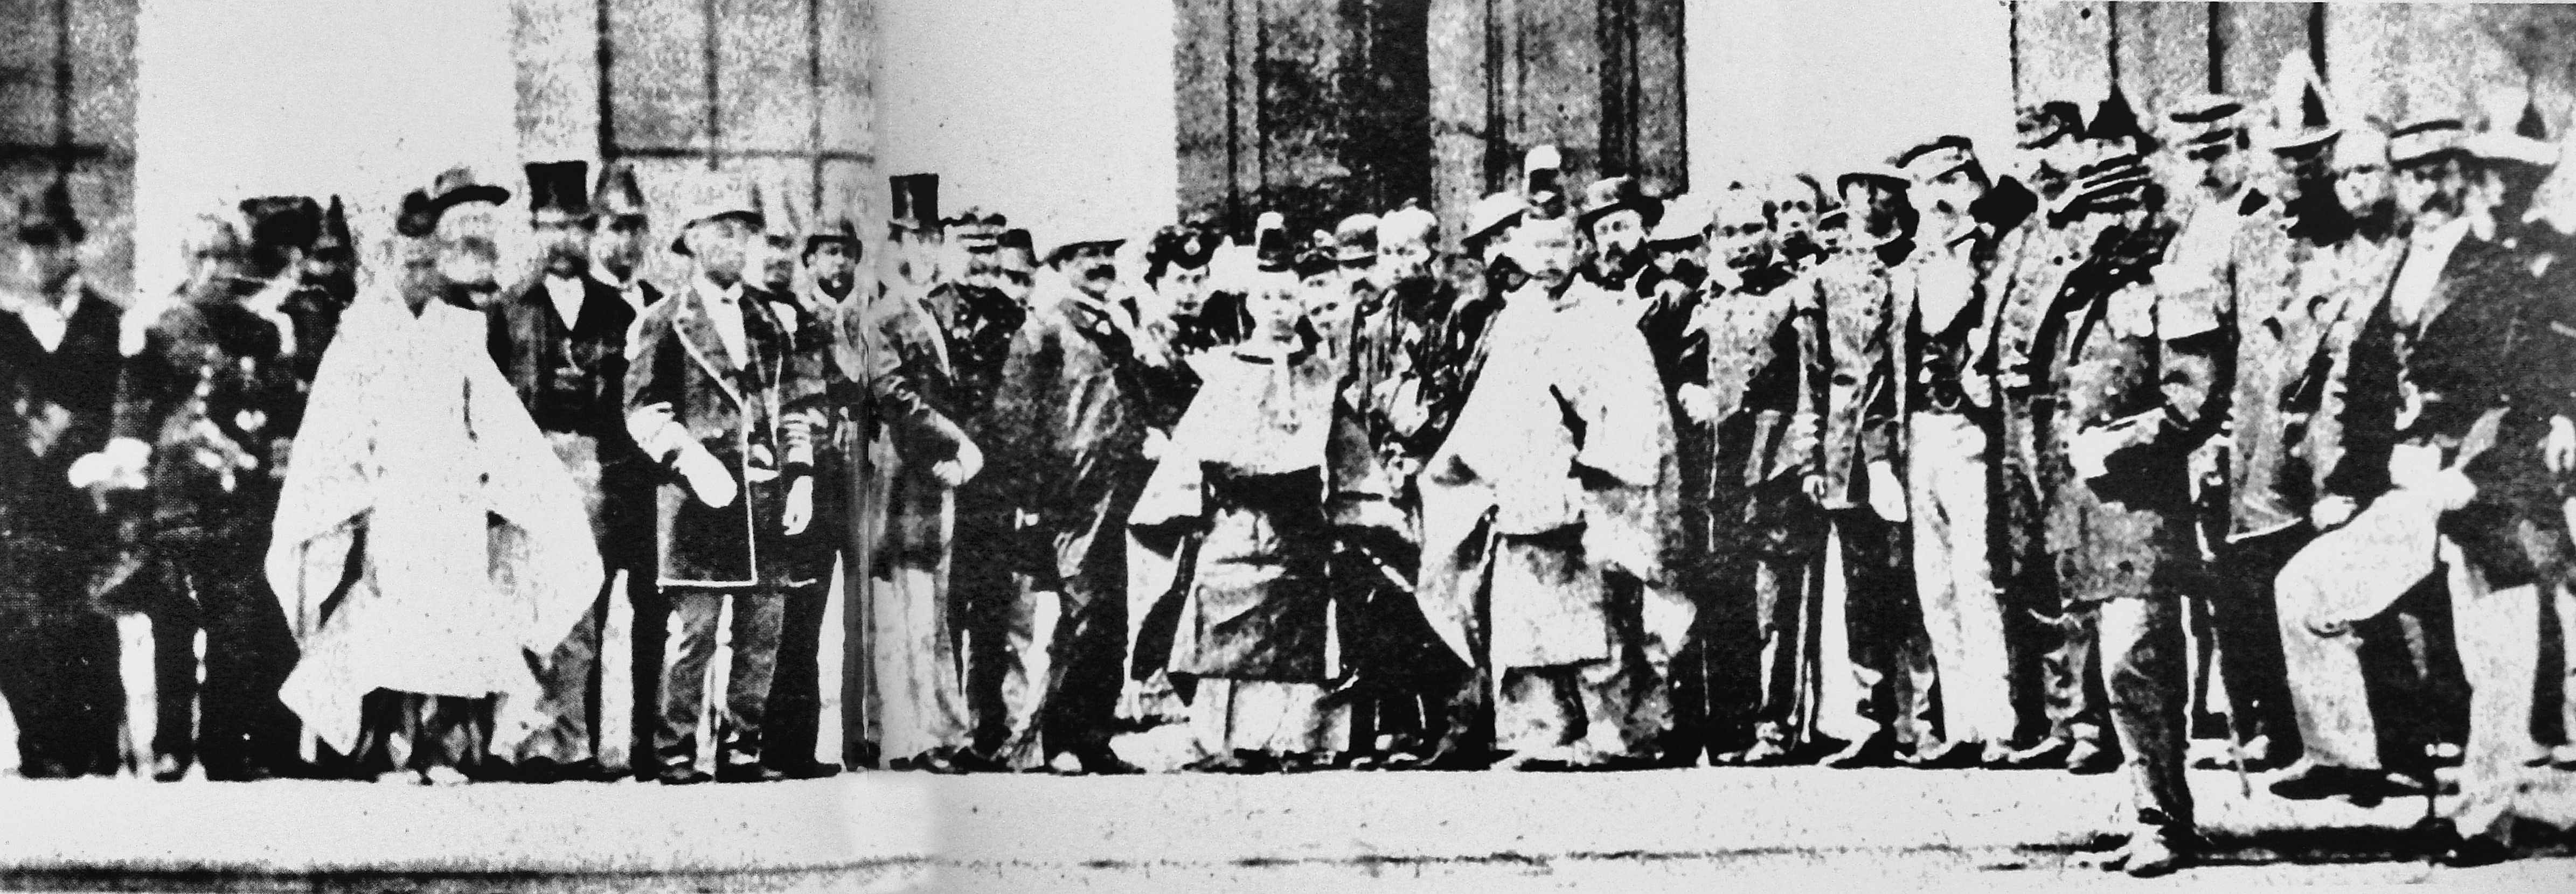 the effects of meiji restoration on the peasant and working class Allinson anievas - meiji restoration by it proposed that russia's minority working-class movement could successfully effects of the meiji restoration.